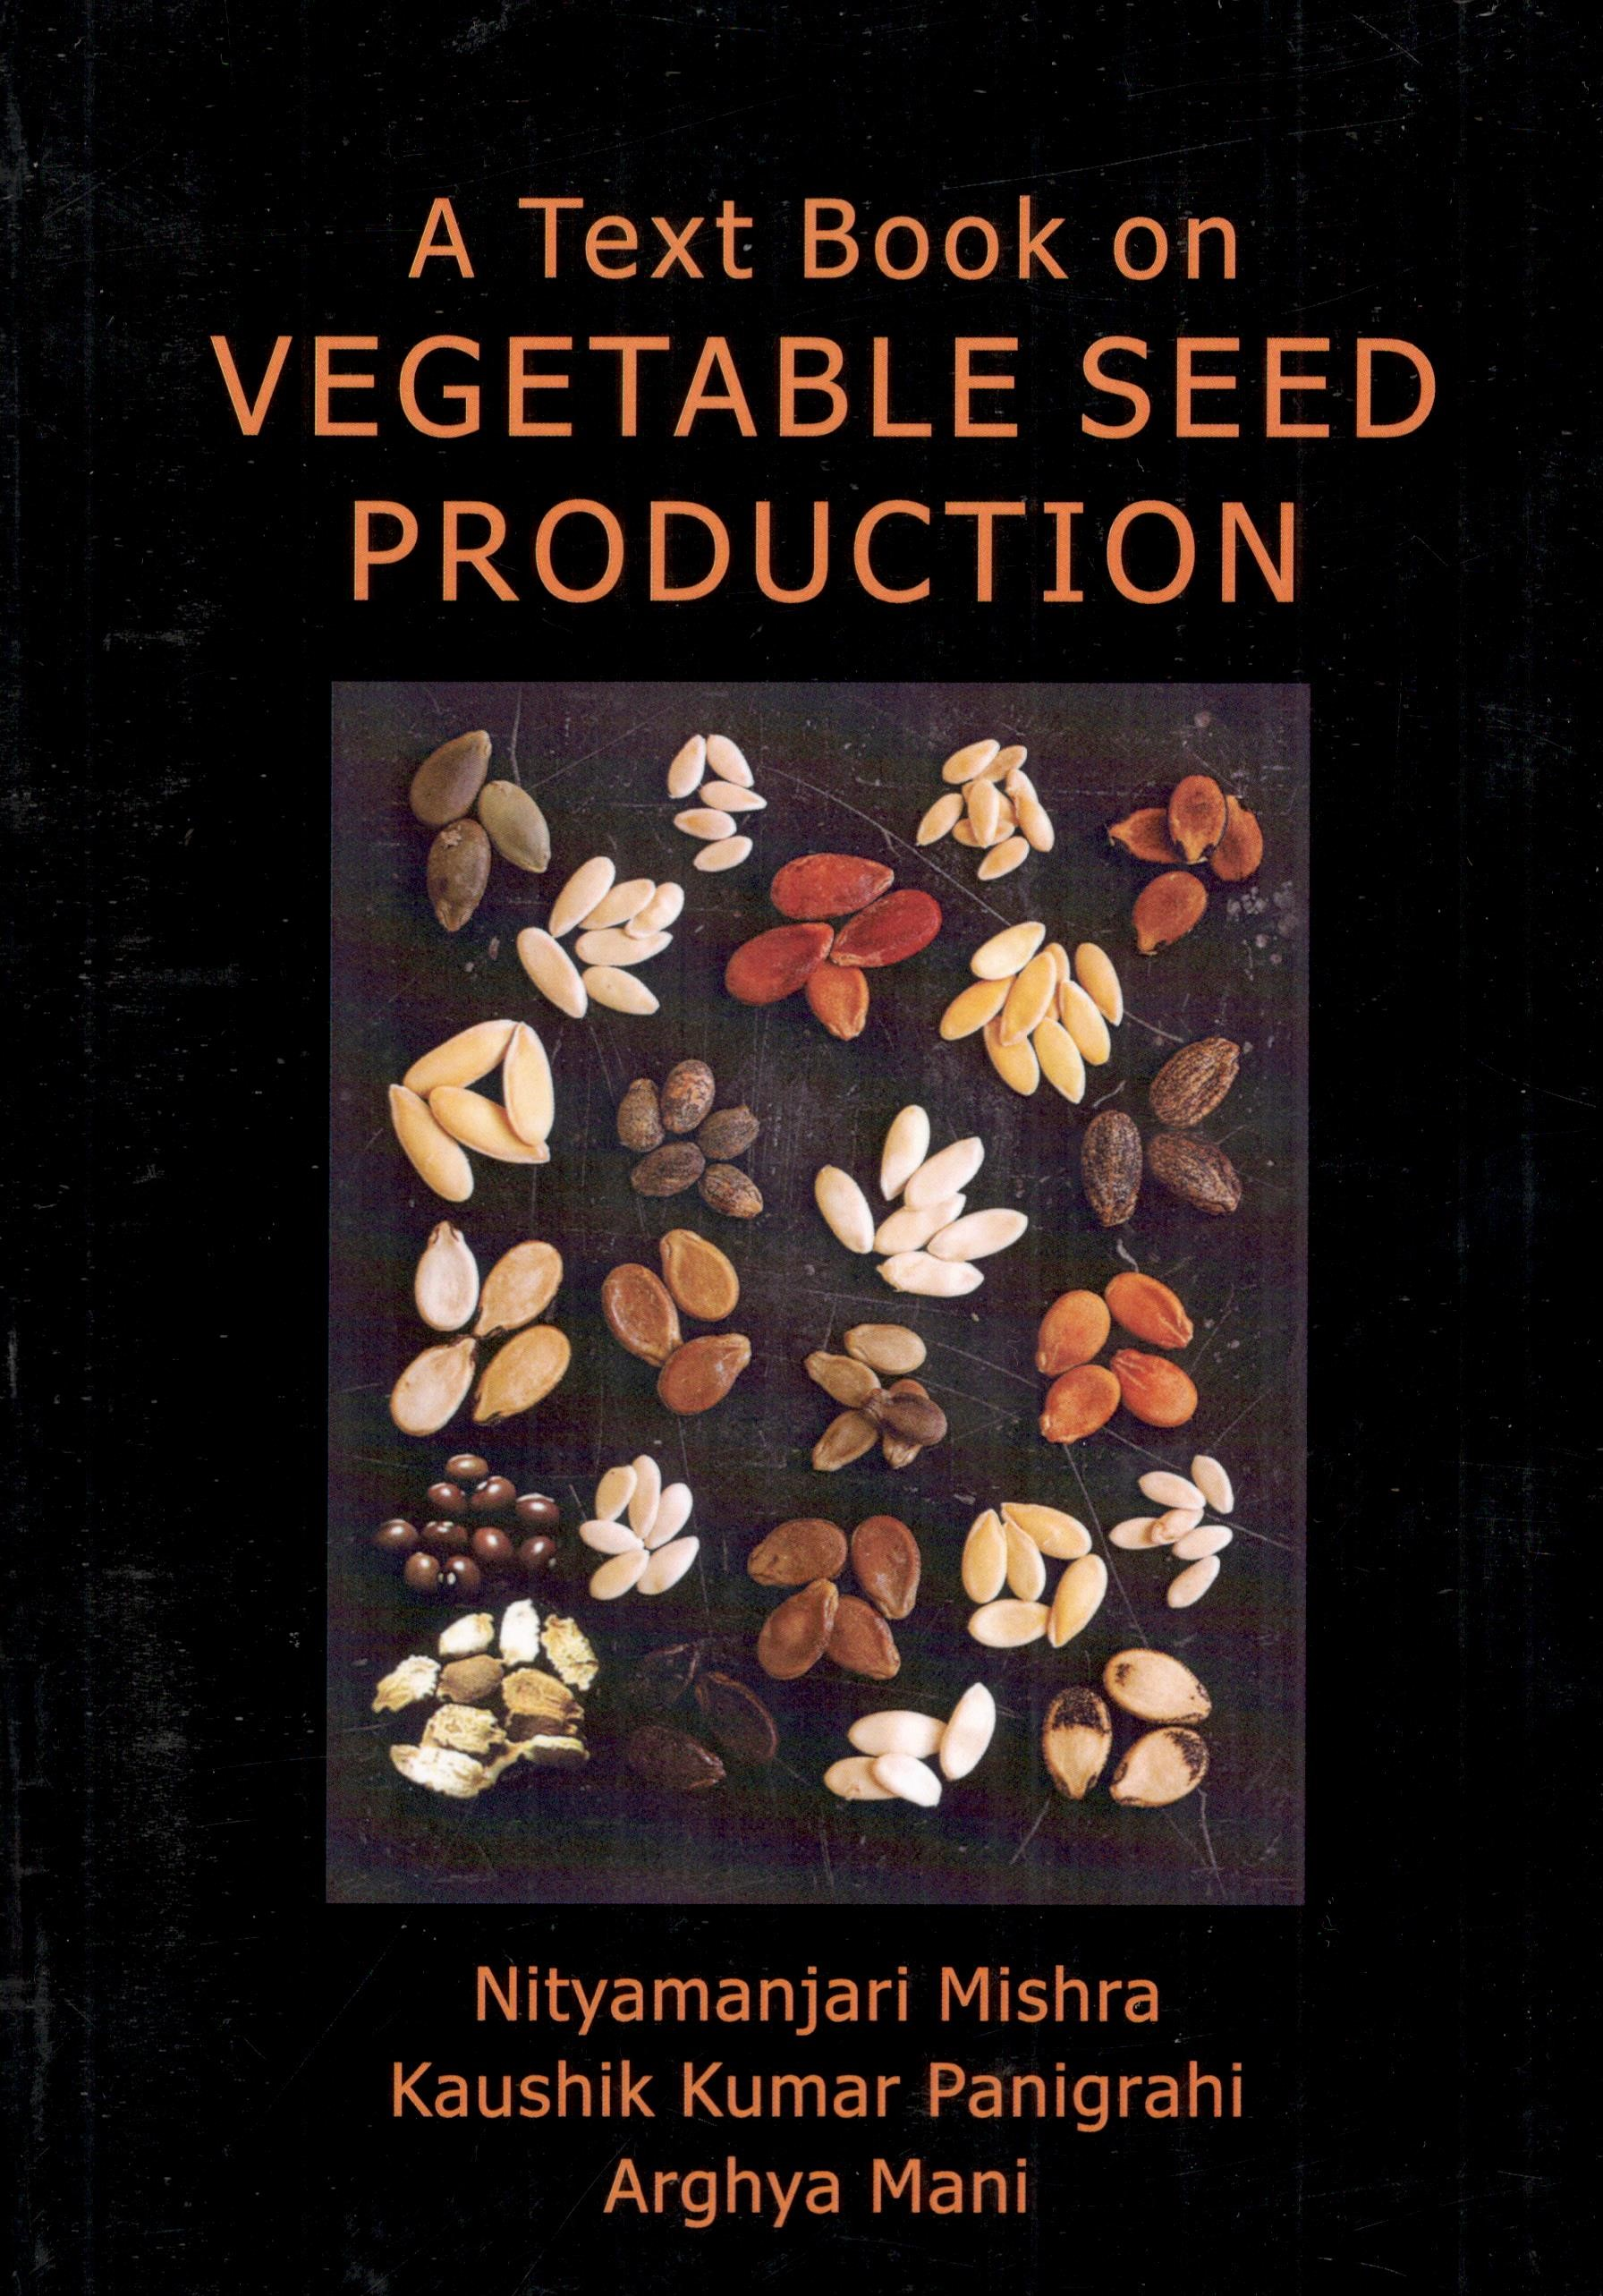 A Text Book on Vegetable Seed Production